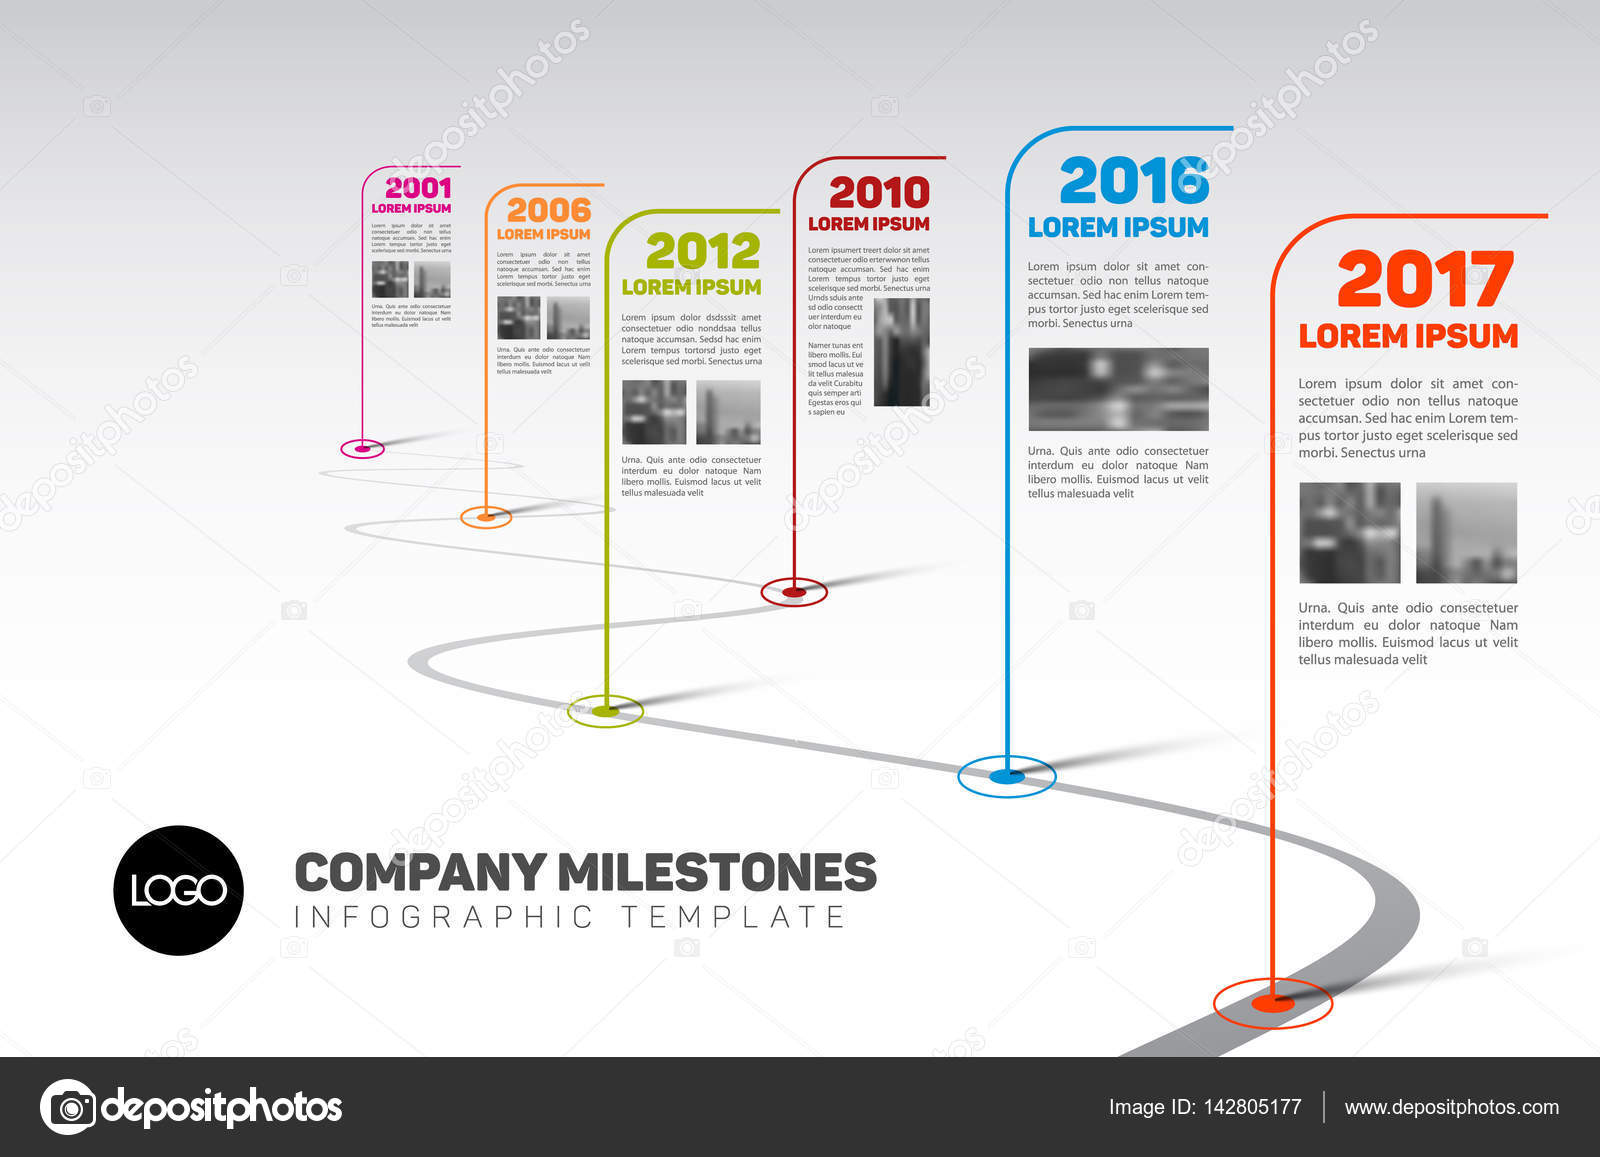 Company Milestones Timeline Template Vector orson 142805177 – Advertising Timeline Template